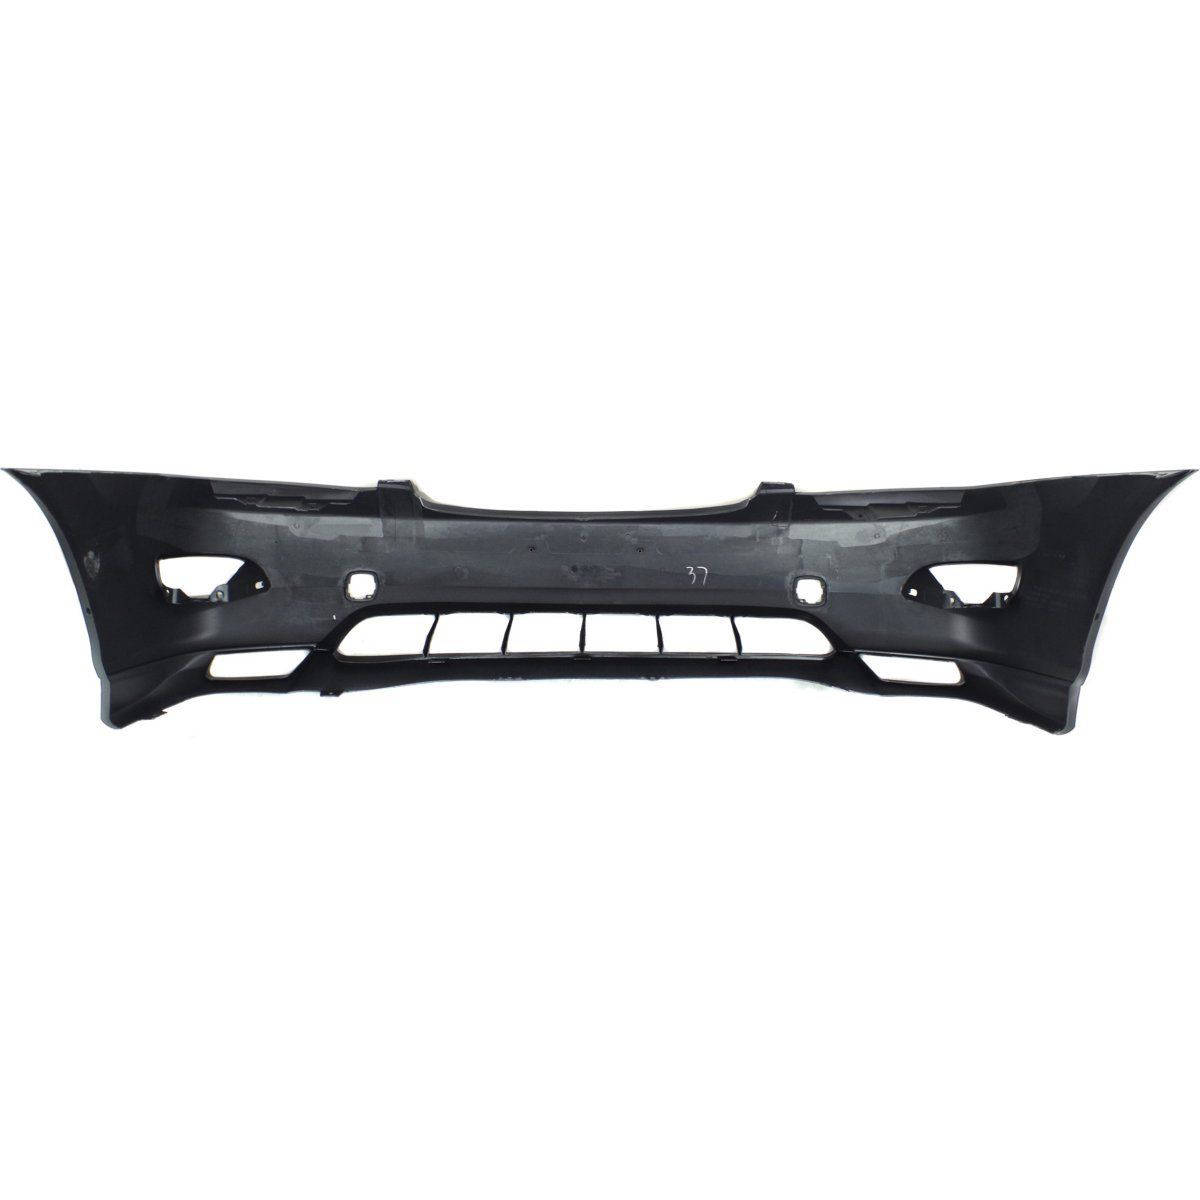 2004-2009 LEXUS RX330 Front Bumper Cover Japan Built  w/o H/Lamp Washers  w/o Radar Cruise Control Painted to Match